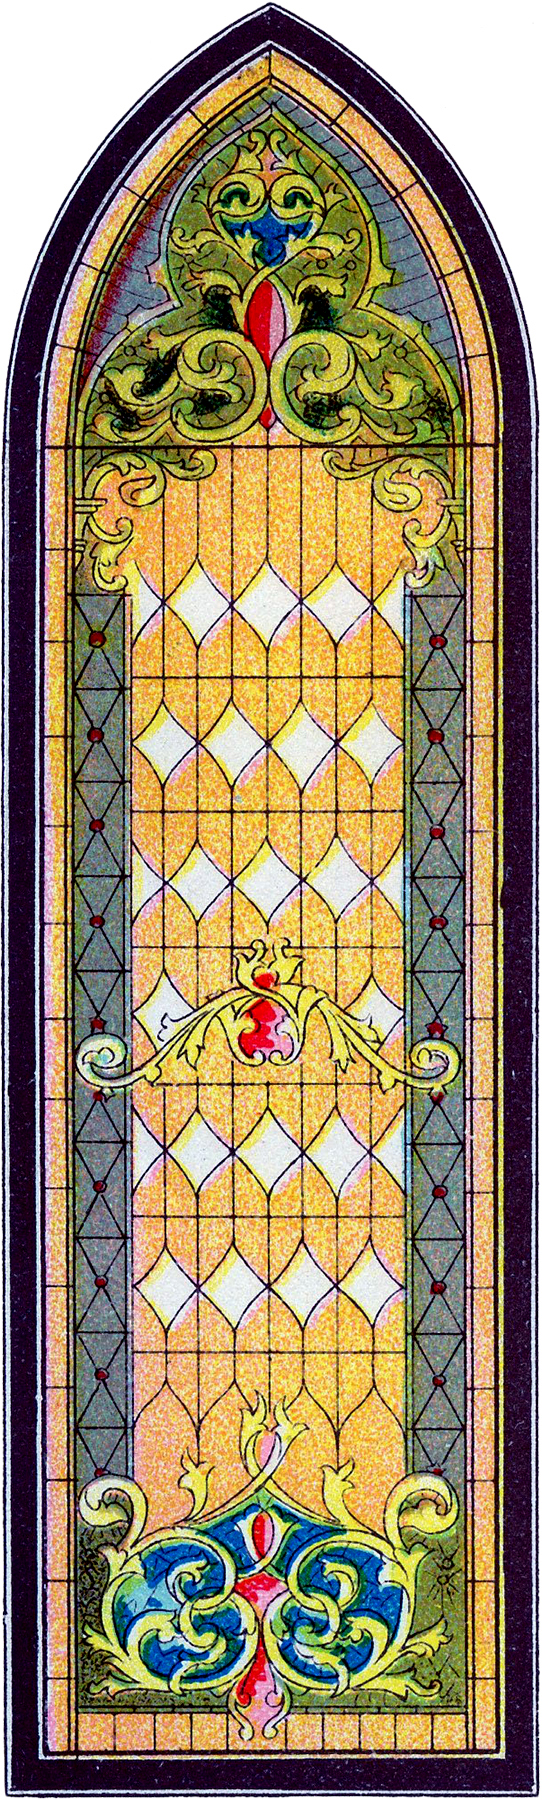 Antique stained glass doors - Vintage Stained Glass Church Window Image